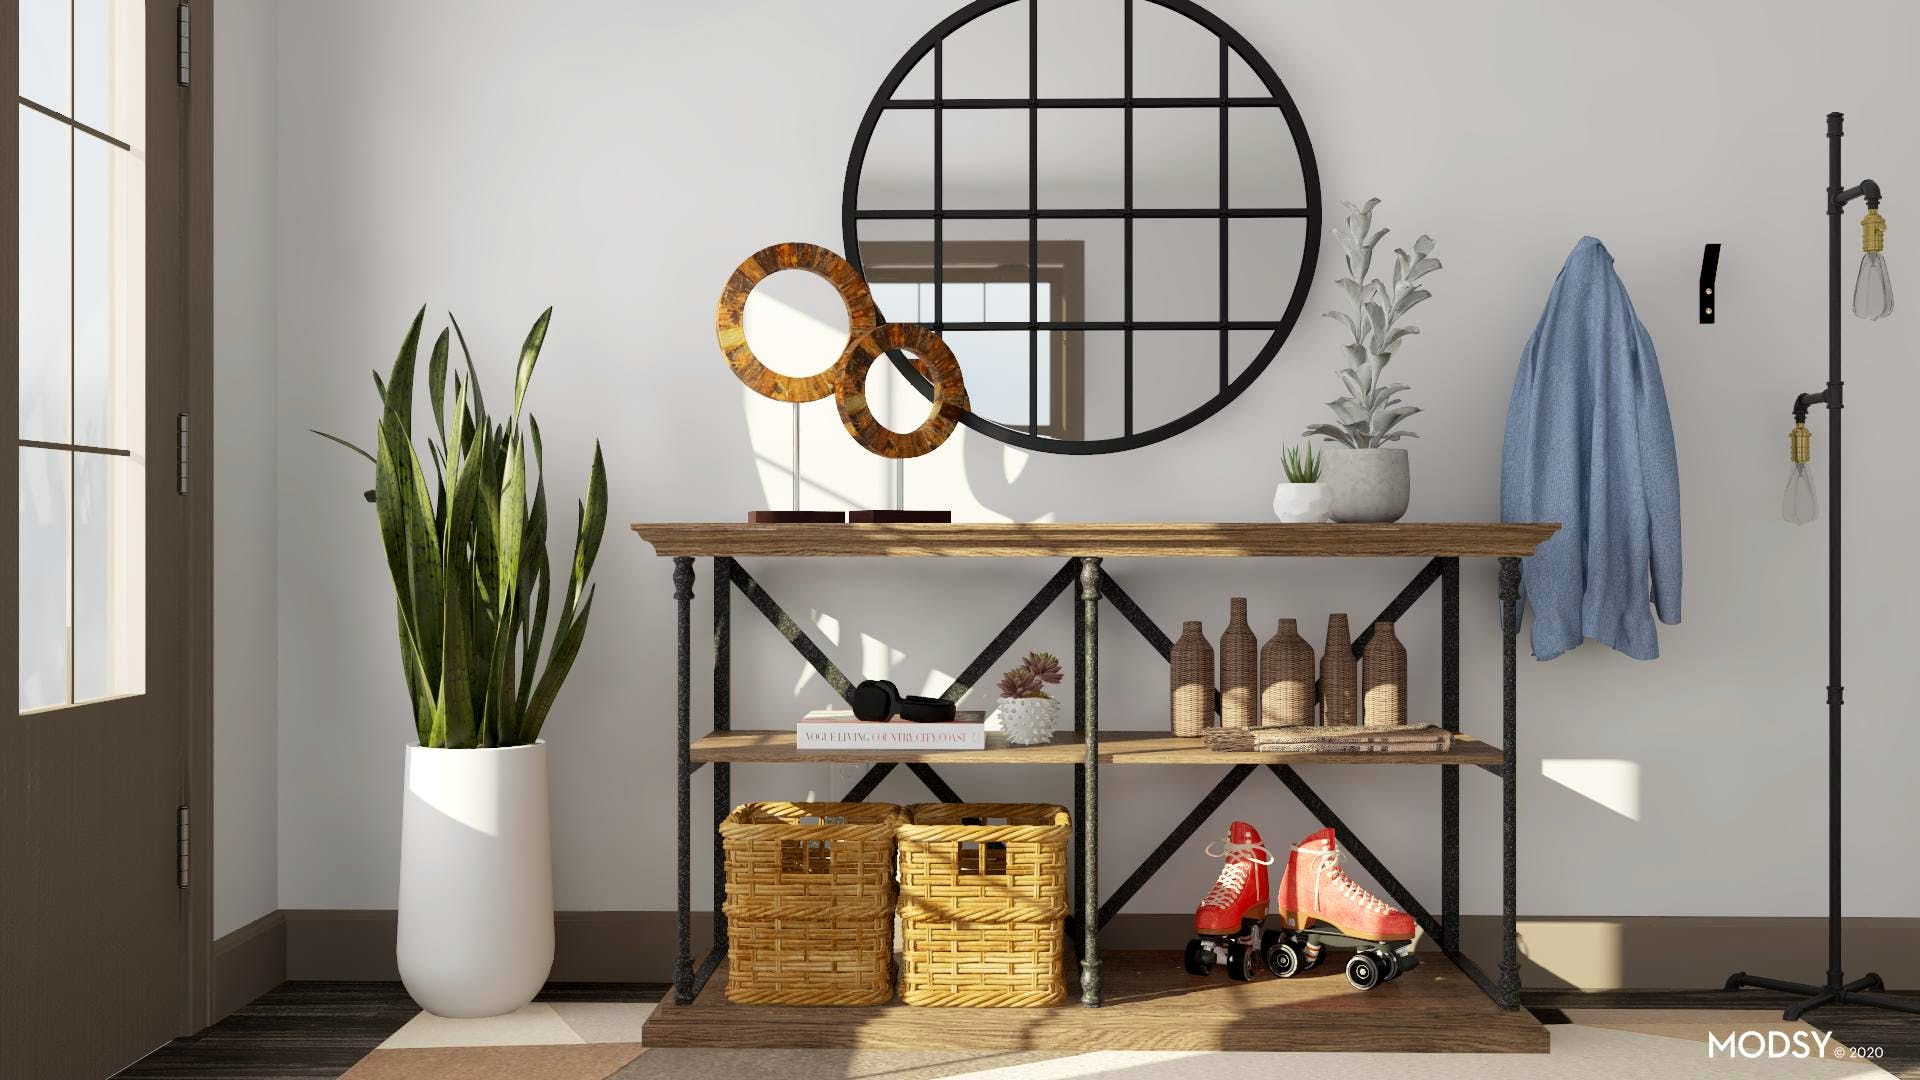 Earth tones for a welcoming entry!